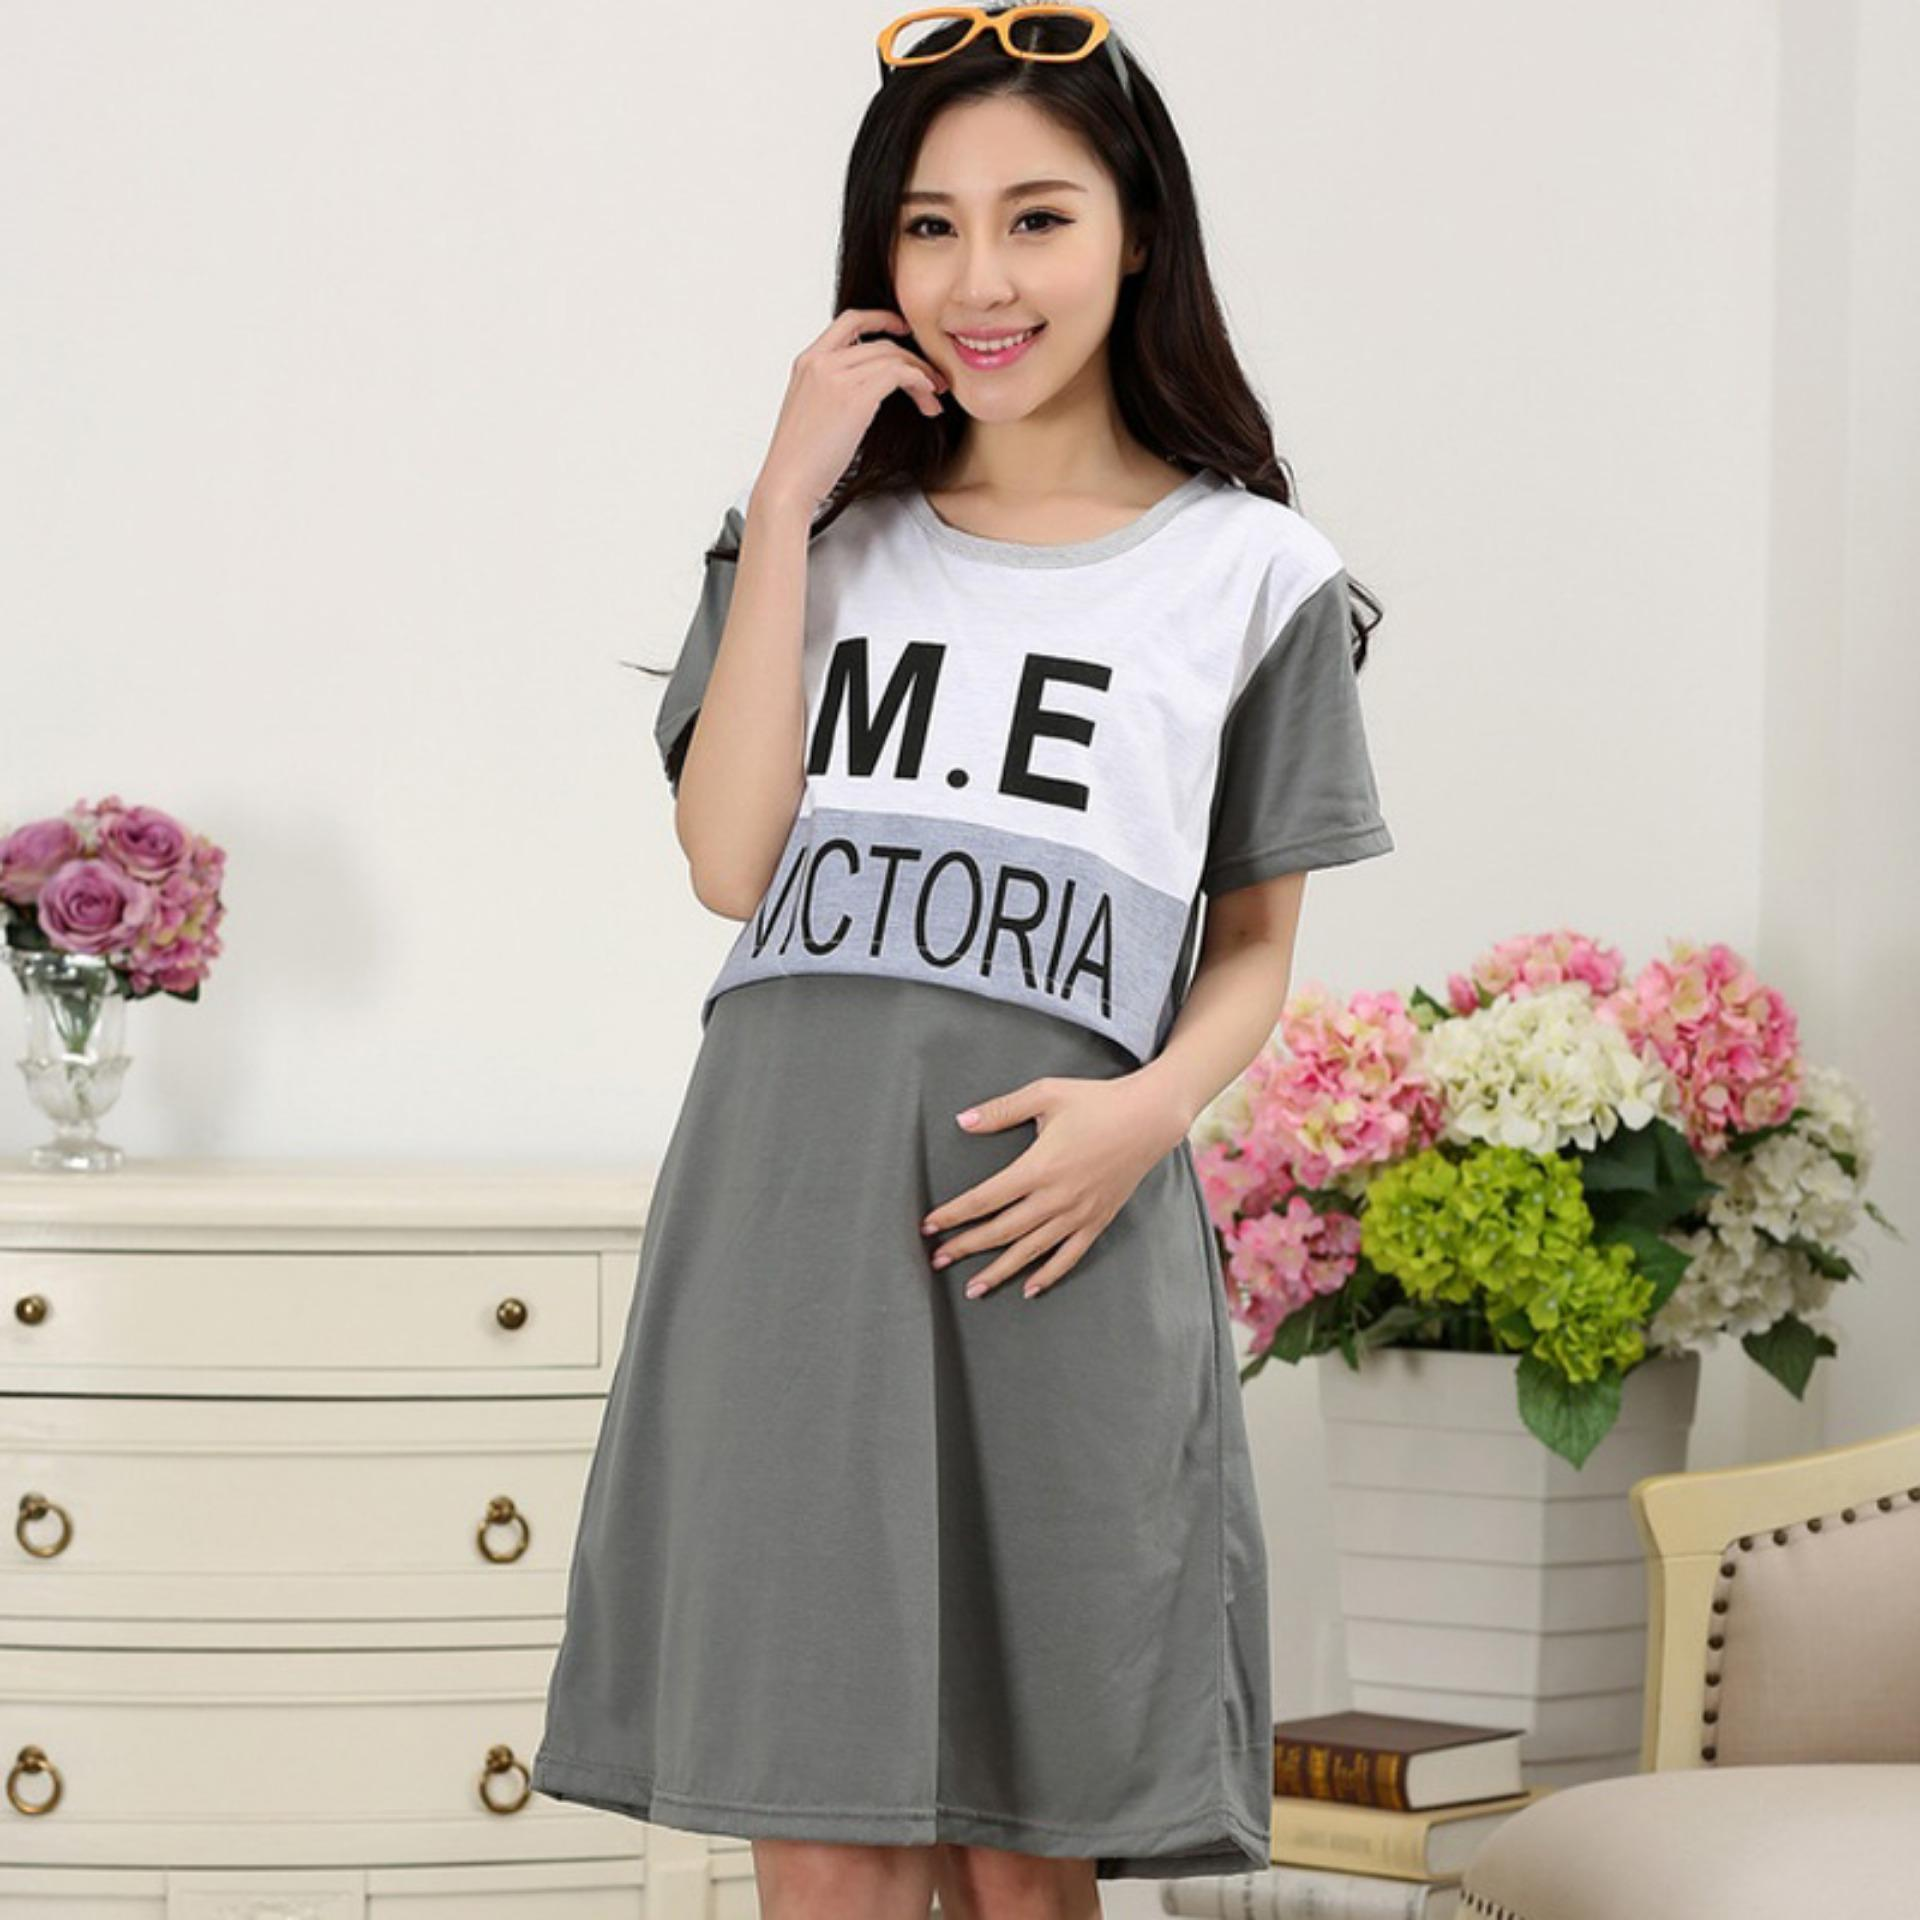 Maternity Dresses Pregnant Women Dress Short Sleeve Postnatal Breastfeeding Clothes - intl